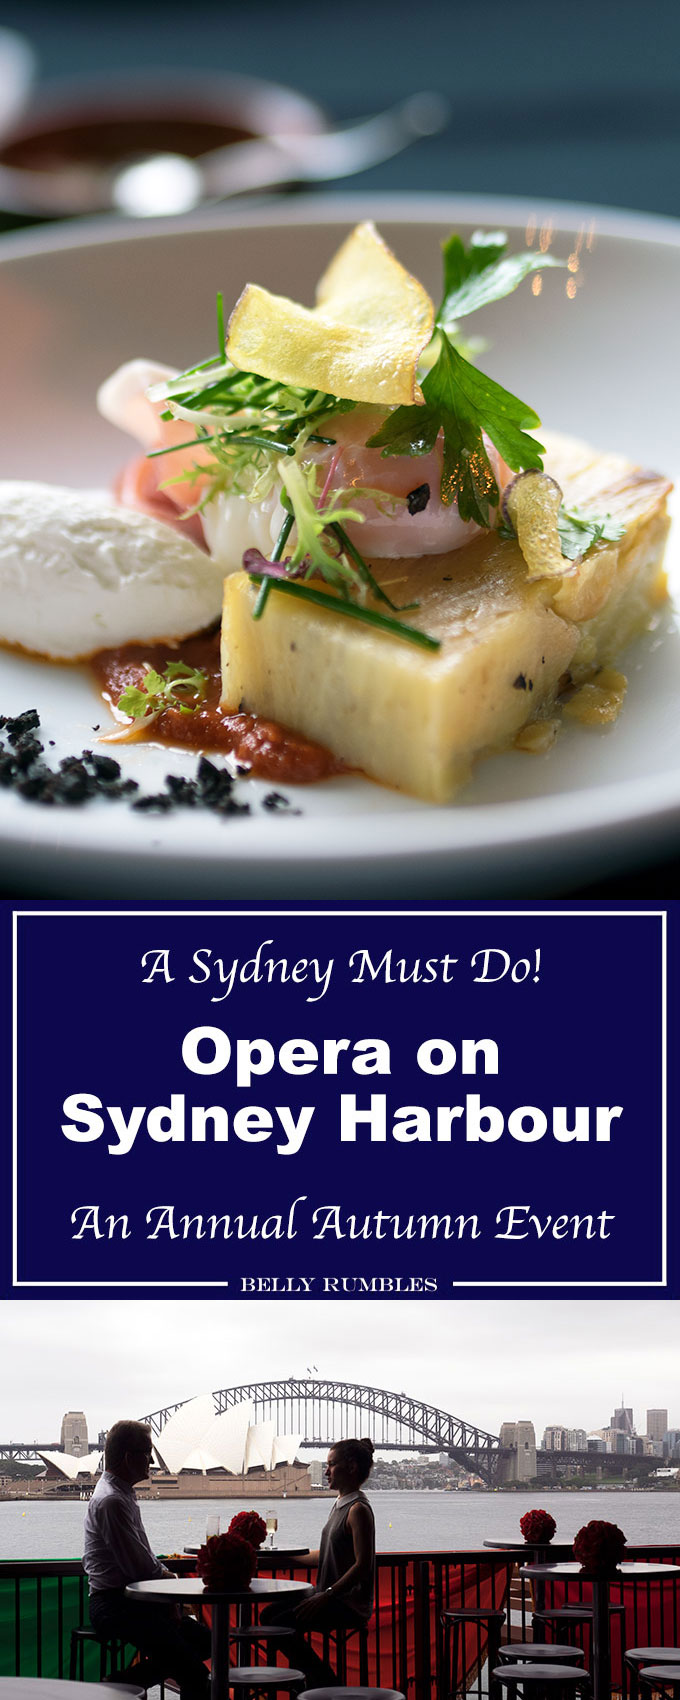 Handa Opera on Sydney Harbour 2017 production of Carmen and an insight to what The Platinum Club is really like for dinner.